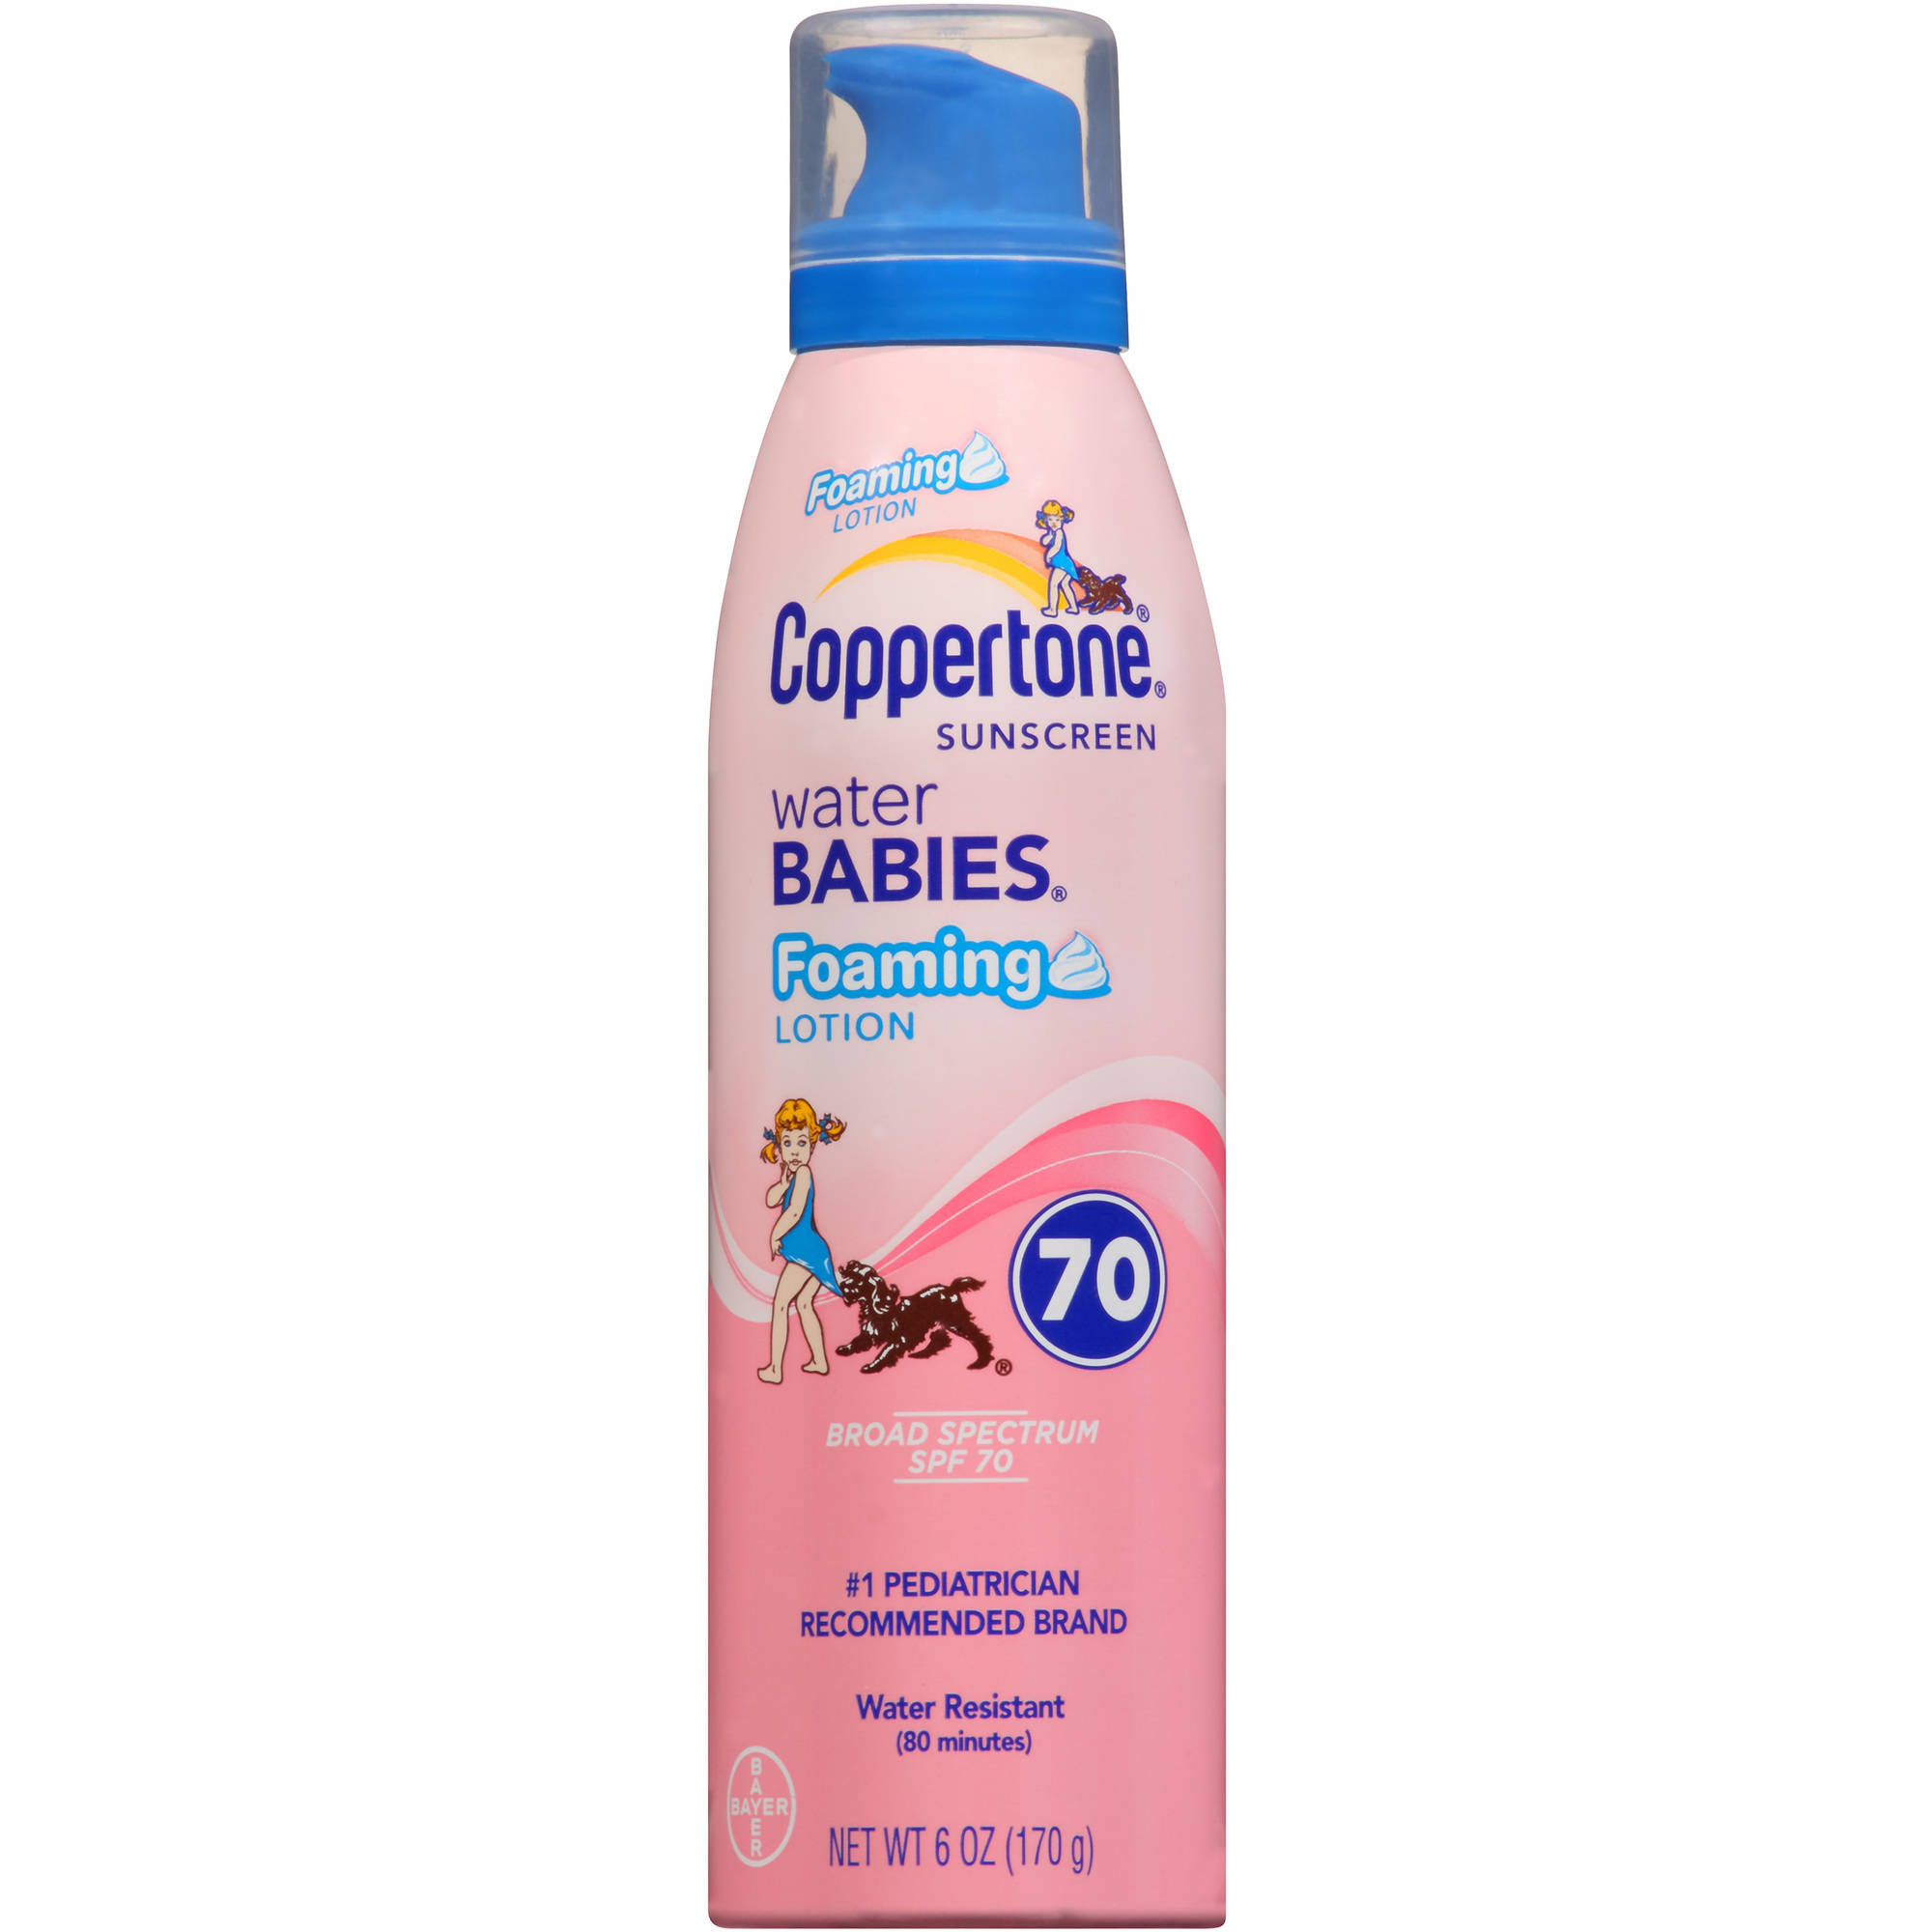 Coppertone Water Babies Foaming Lotion Sunscreen, SPF 70, 6 oz